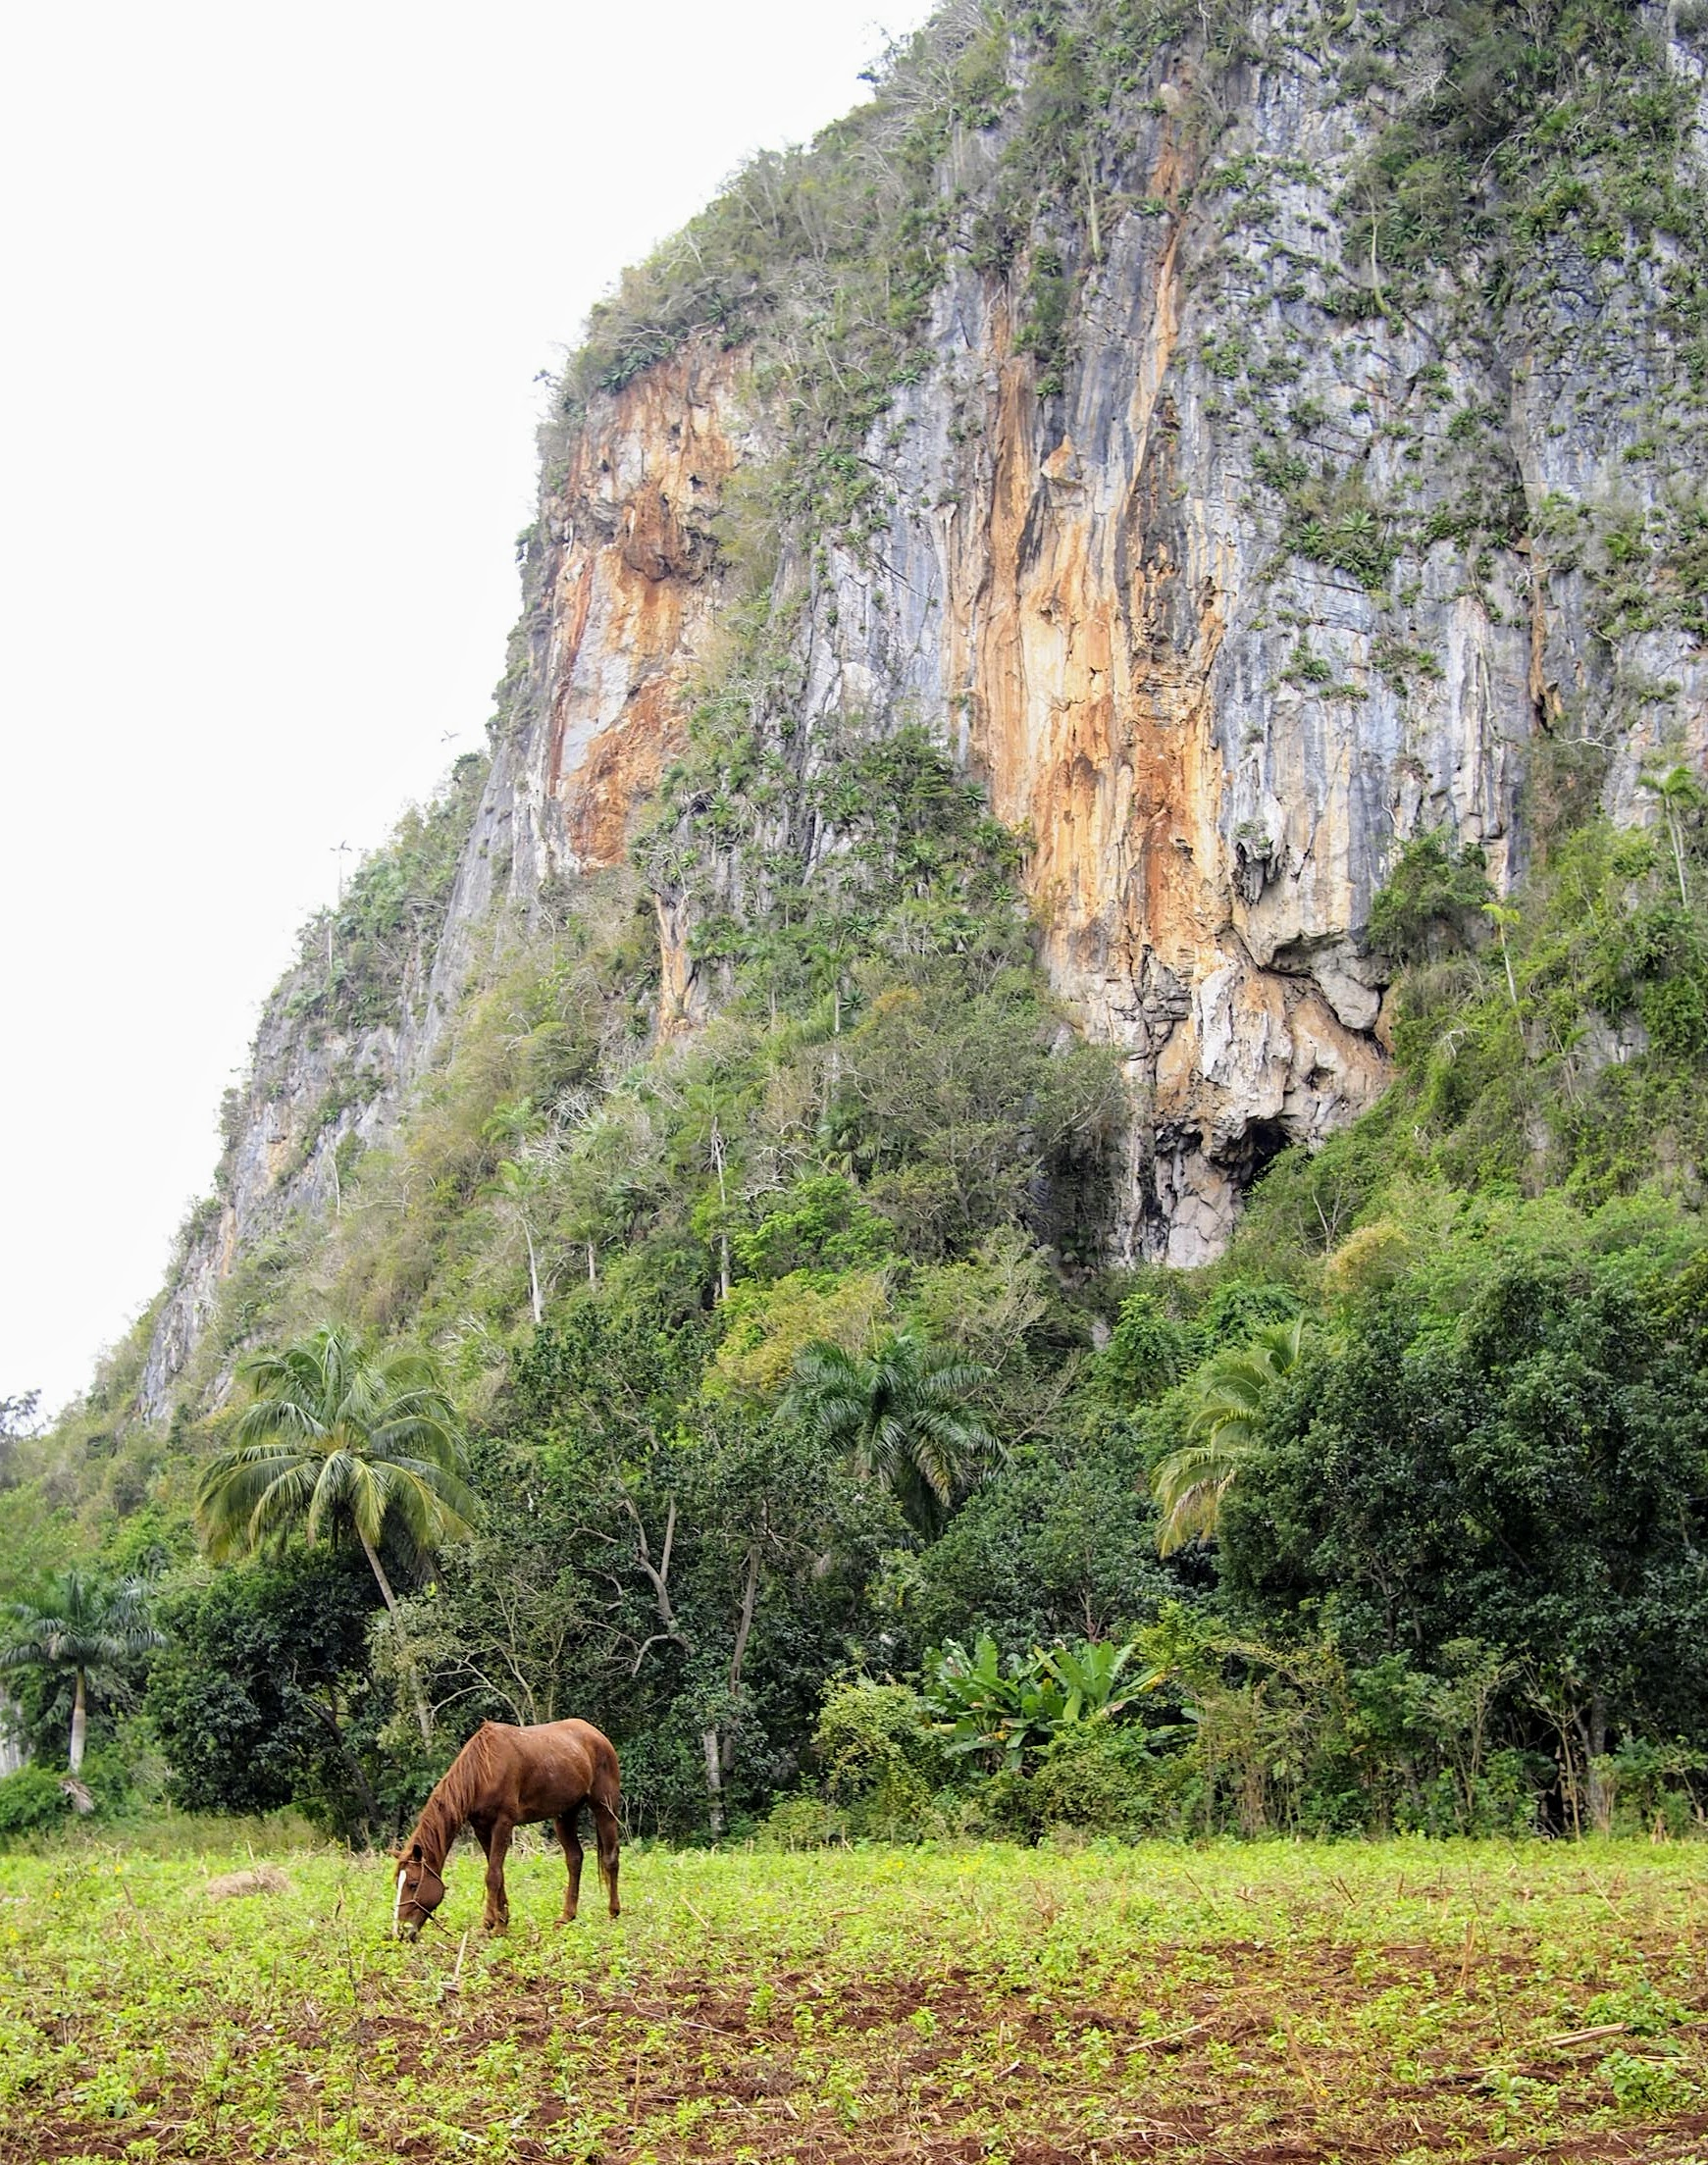 Exploring Viñales can be done on horses, on foot, or bikes (in dry season).